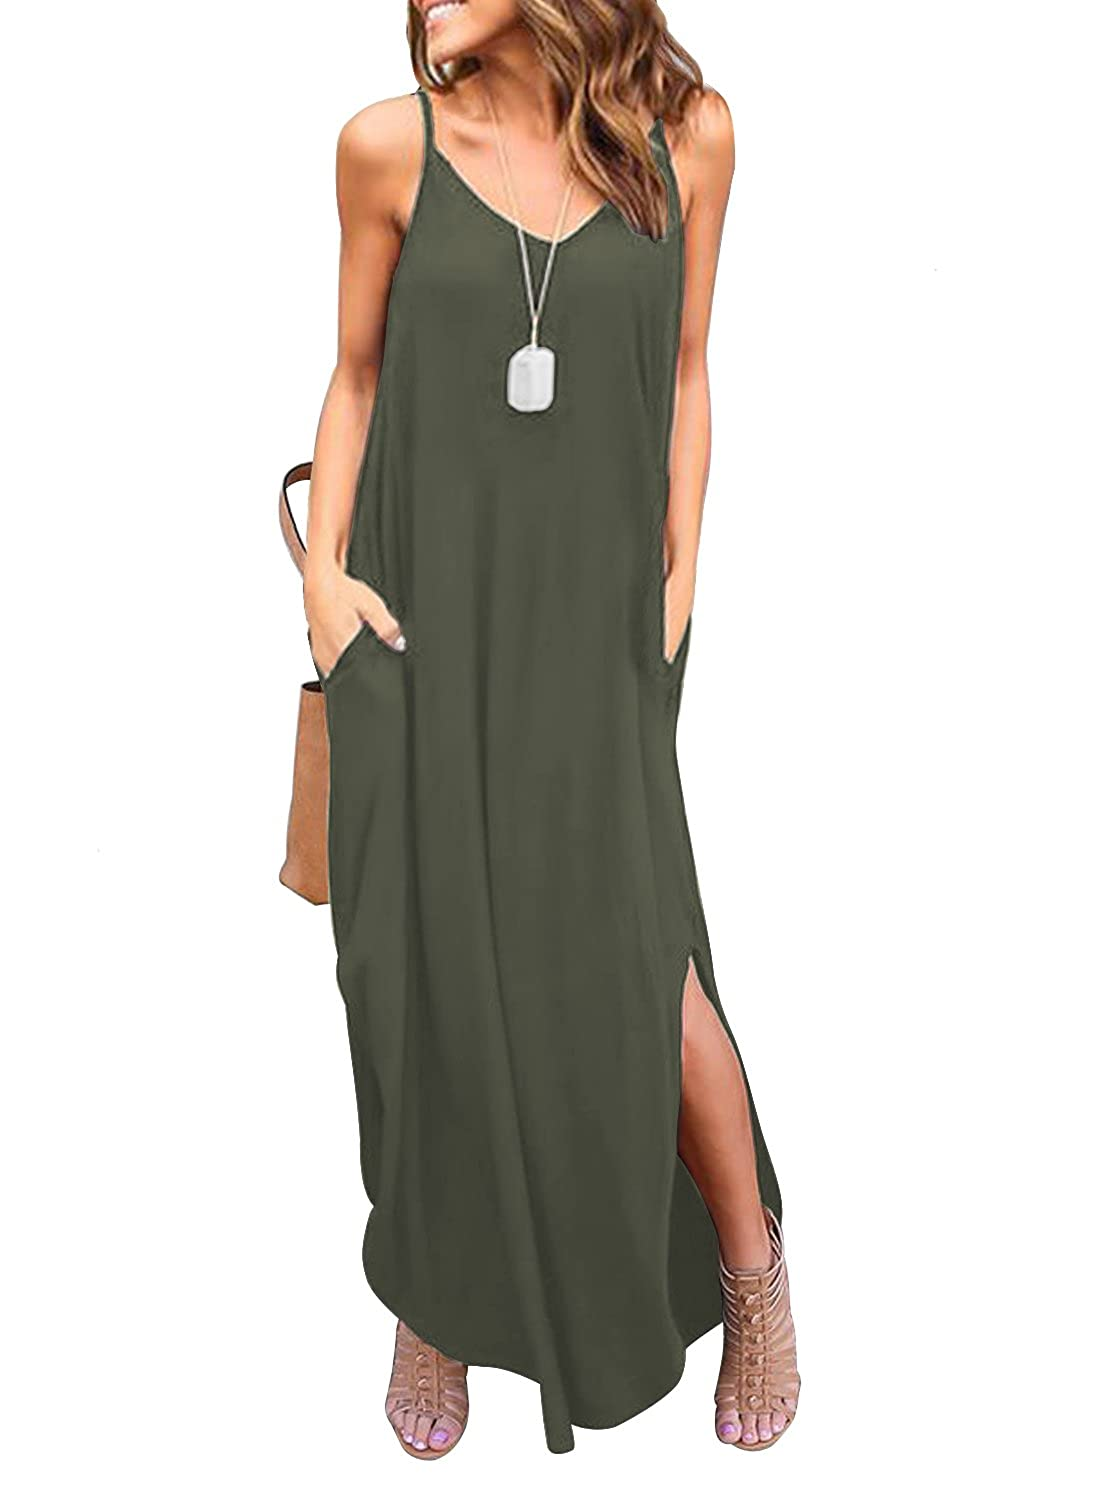 2404a76ec4 HUSKARY Women's Summer Sleeveless Casual Strappy Split Loose Dress Beach  Cover Up Long Cami Maxi Dresses with Pocket at Amazon Women's Clothing  store: